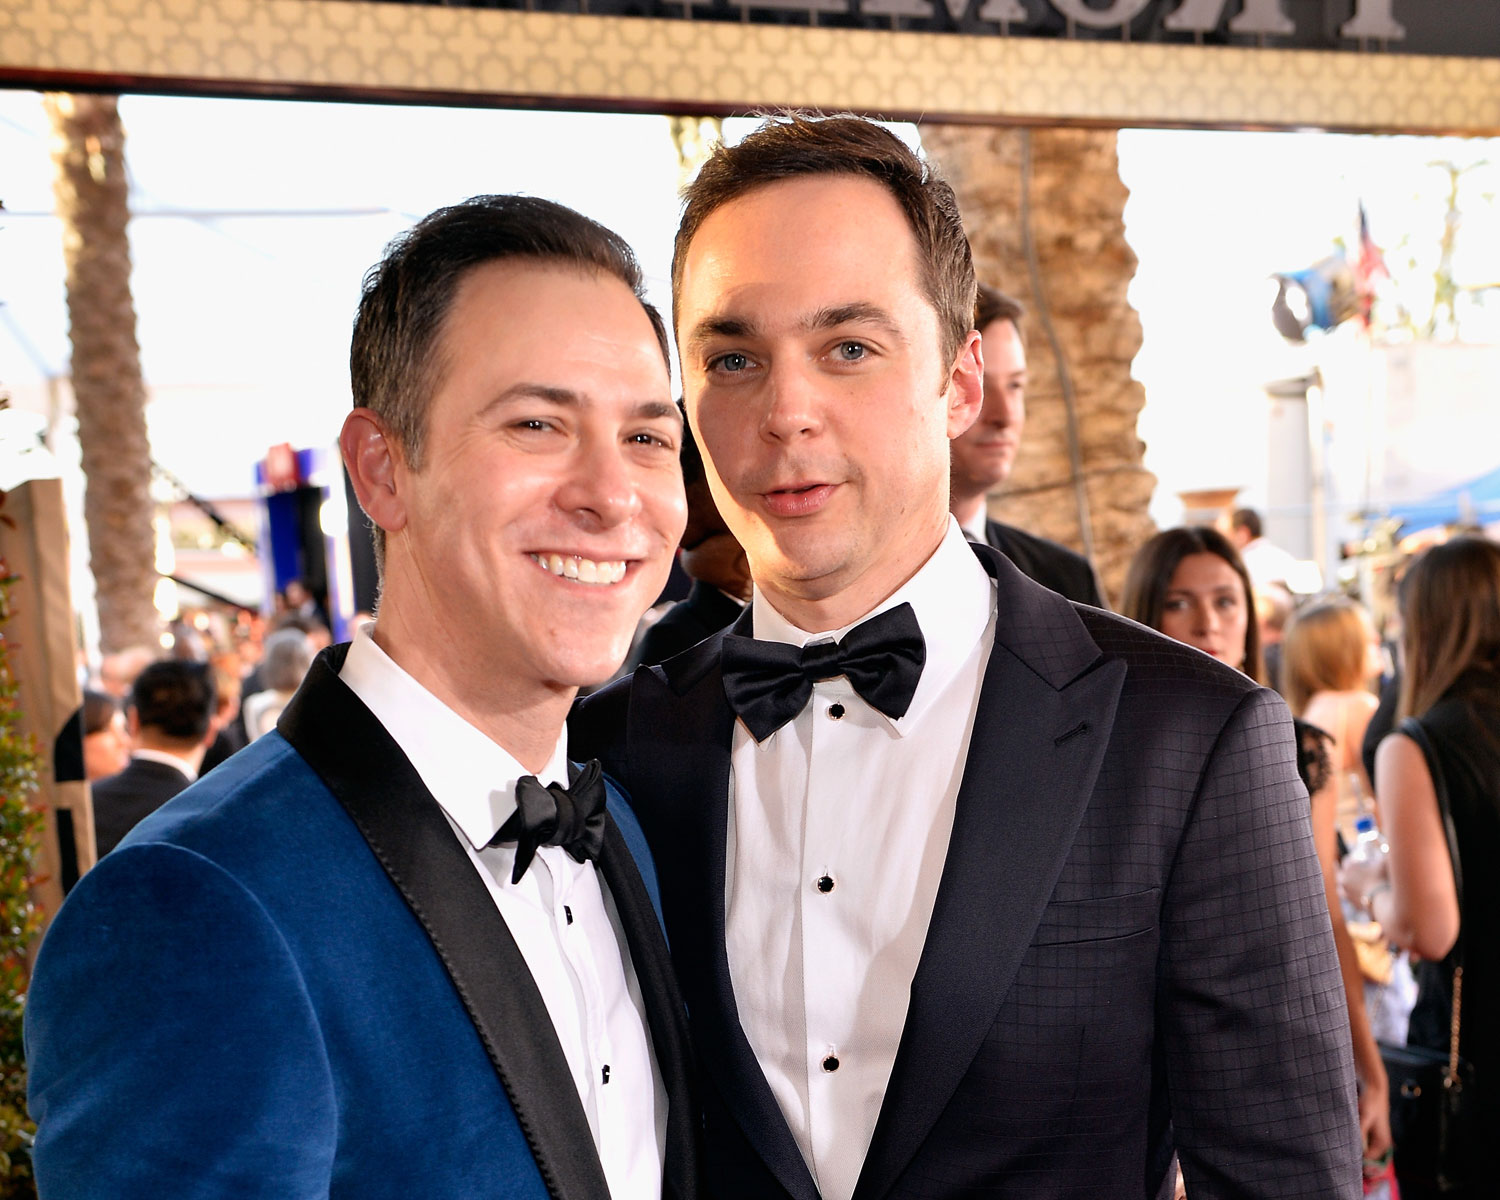 Jim Parsons Wedding Photos Are Insanely Cute See More Here